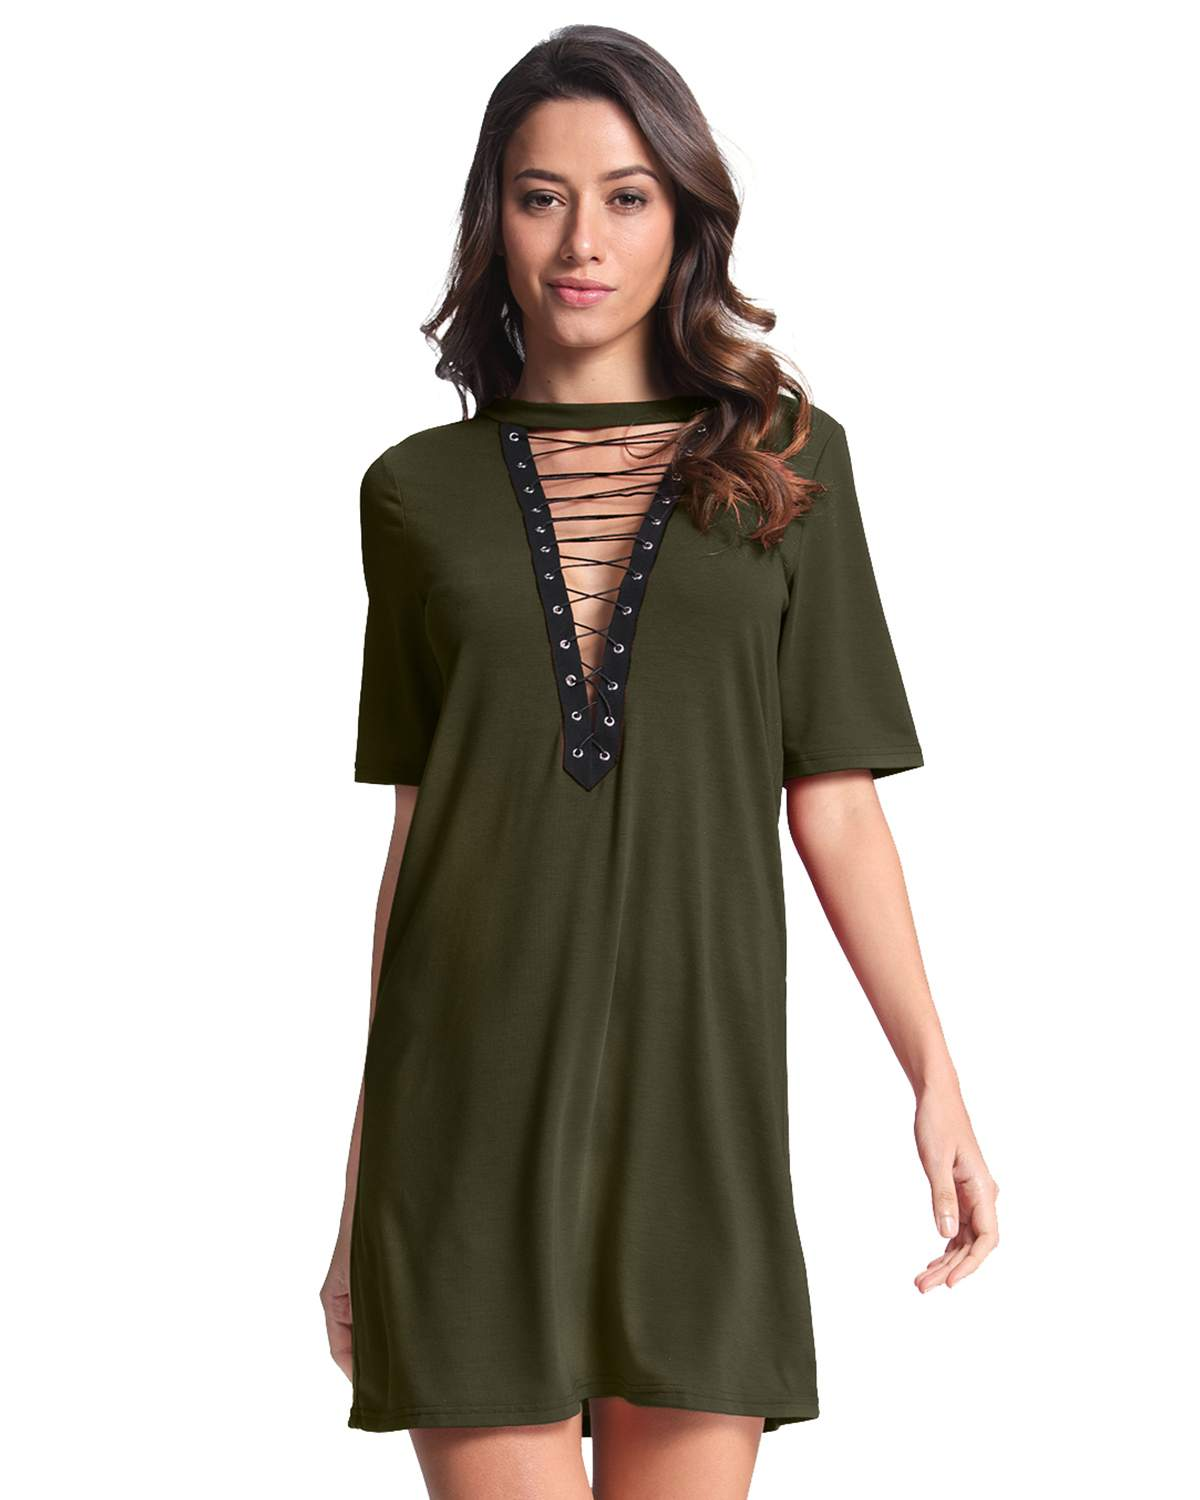 Summer Casual Dresses Women Choker Lace Up Hollow Out Patchwork Mini Dress Sexy V-Neck Short Sleeve Bandage Vestidos Plus Size